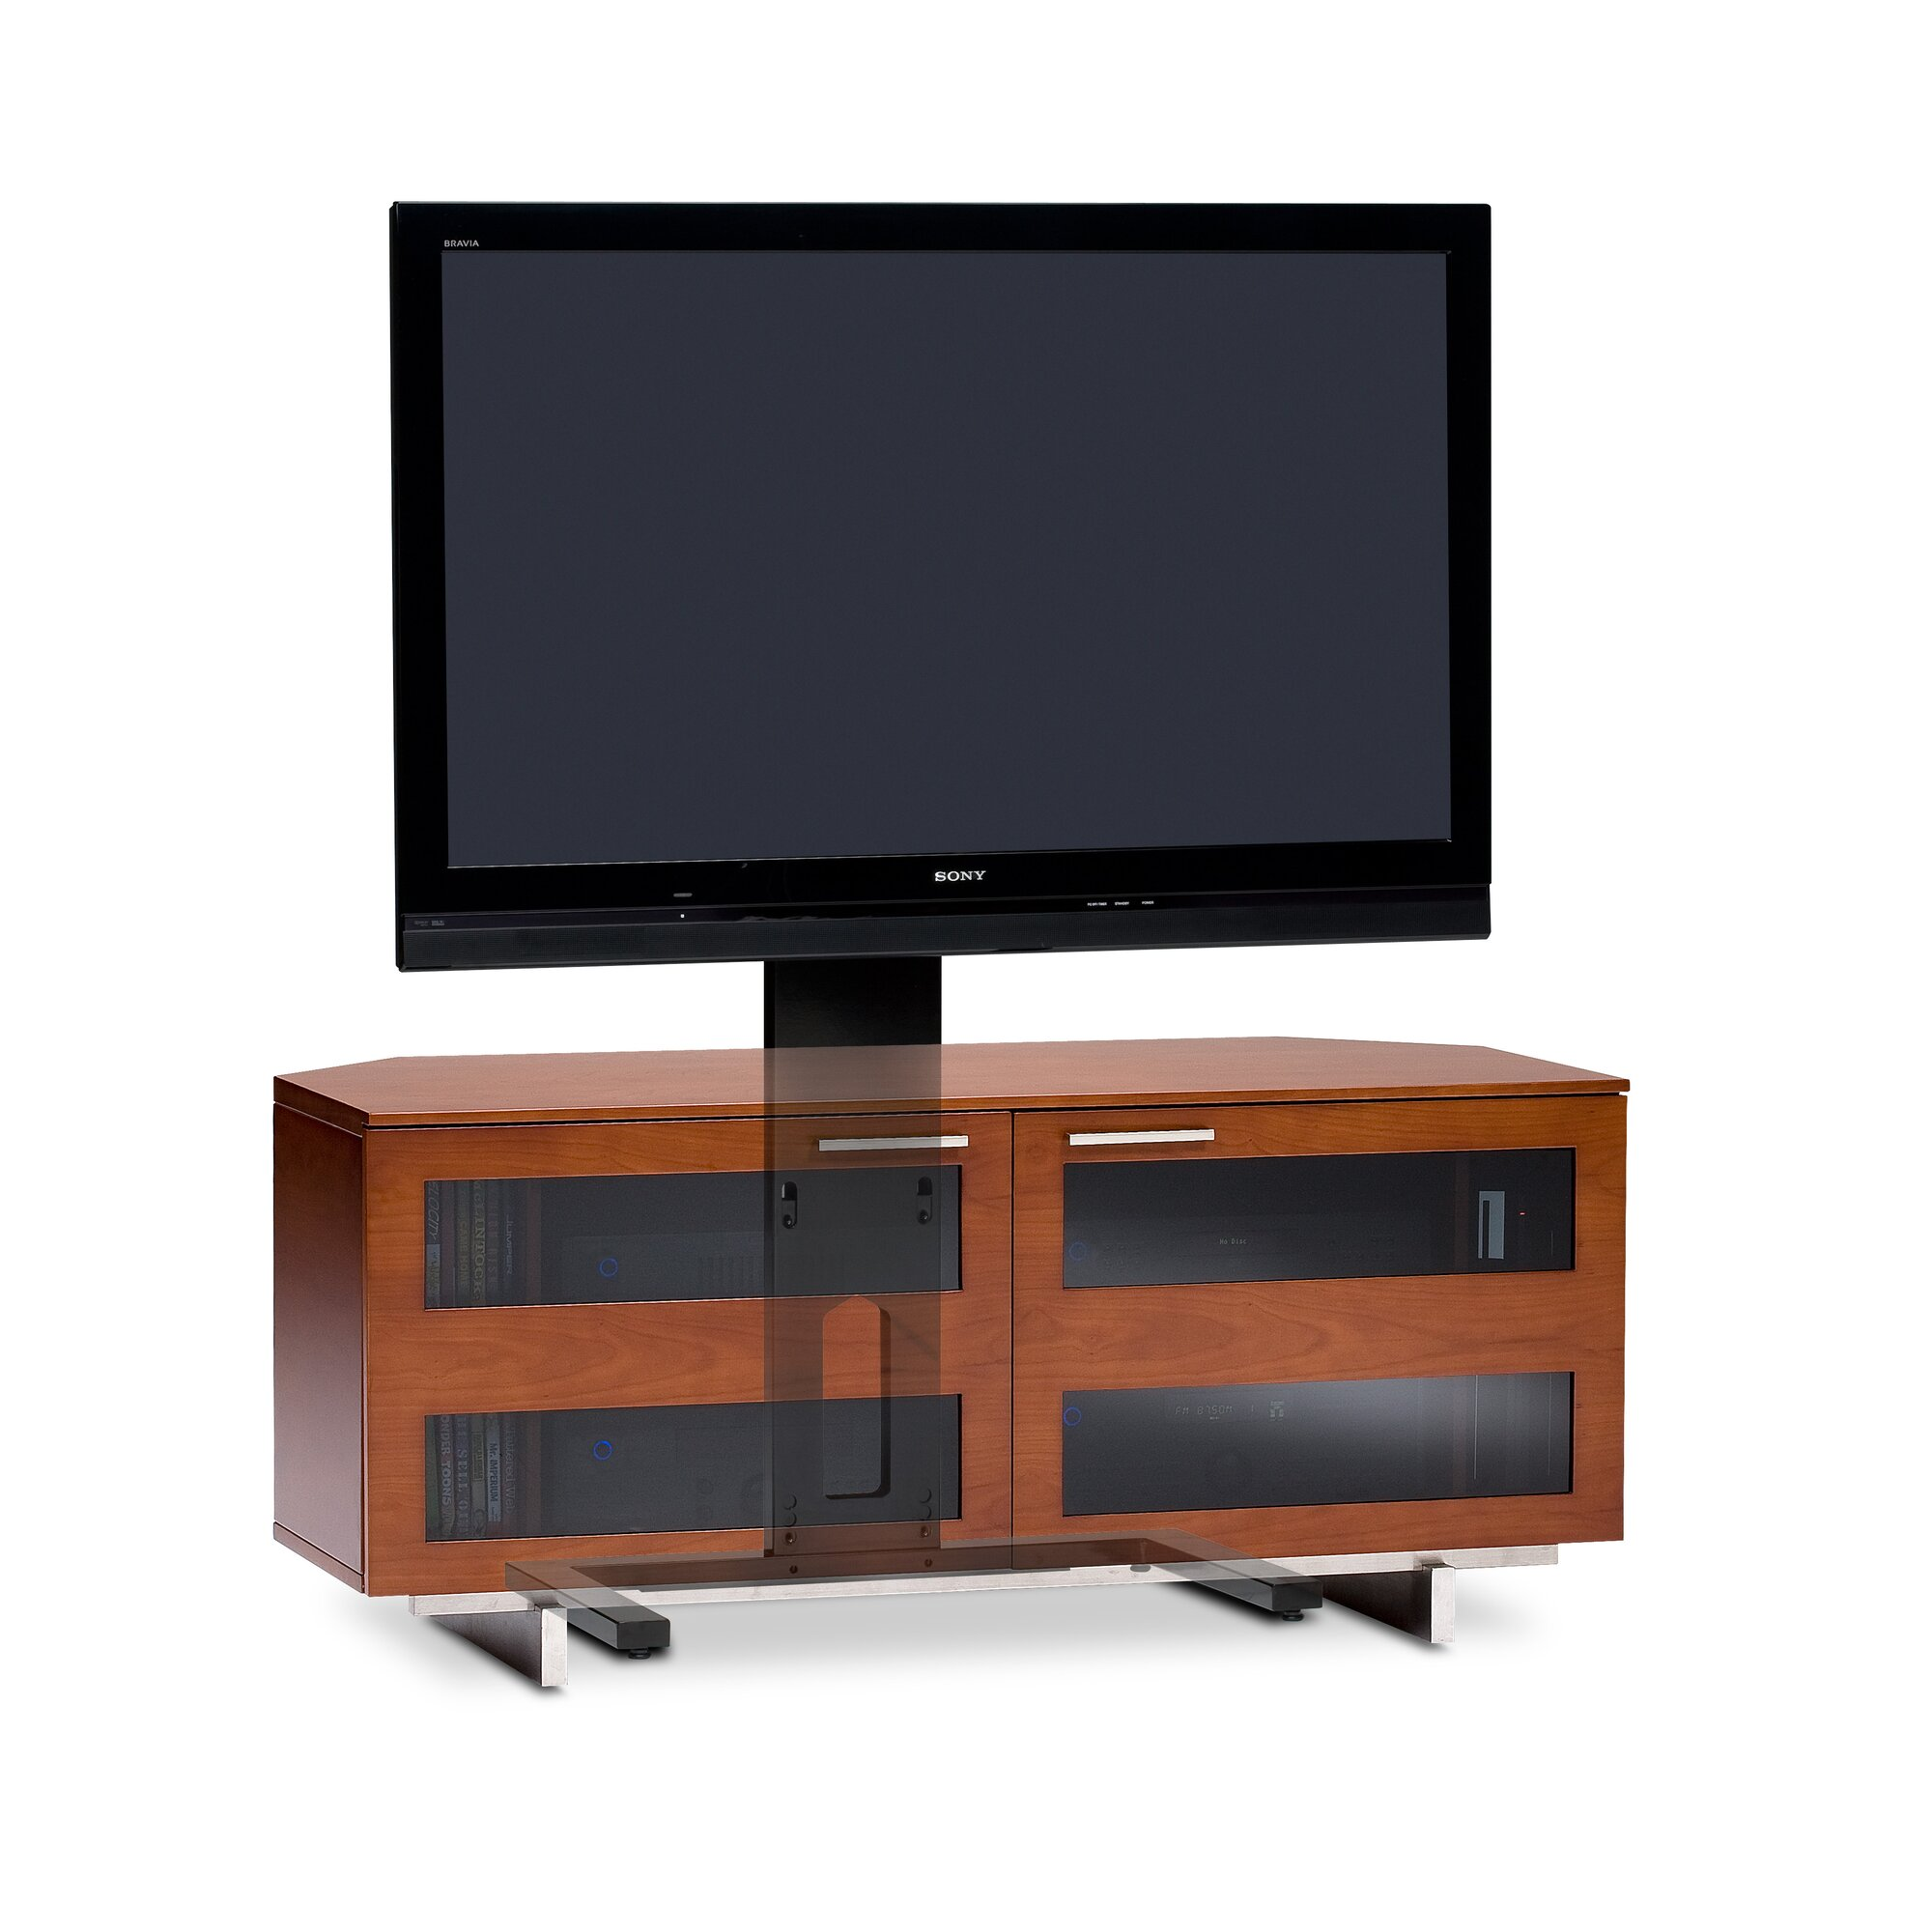 free standing tv stand -  tv stand · arena flat panel freestanding   floor stand mount